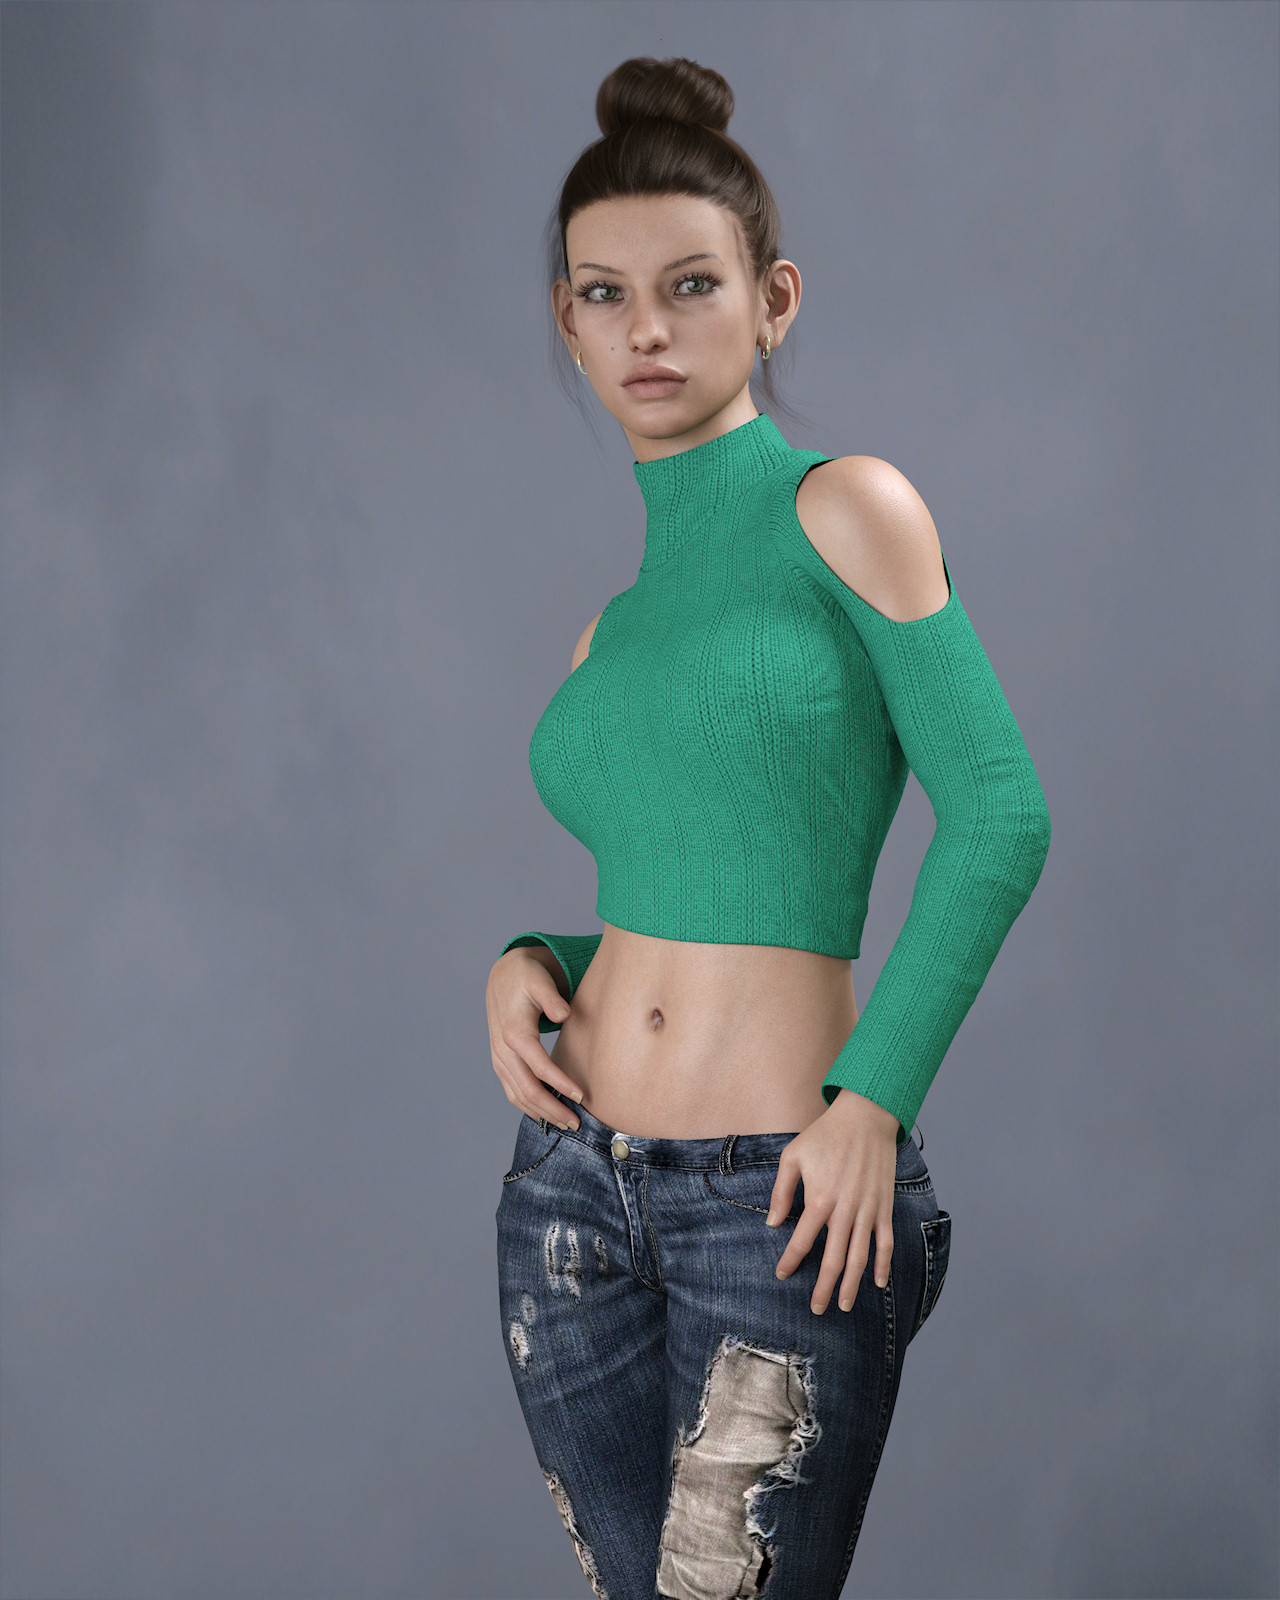 KrashWerks IZABEL for Genesis 8 Female by KrashWerks